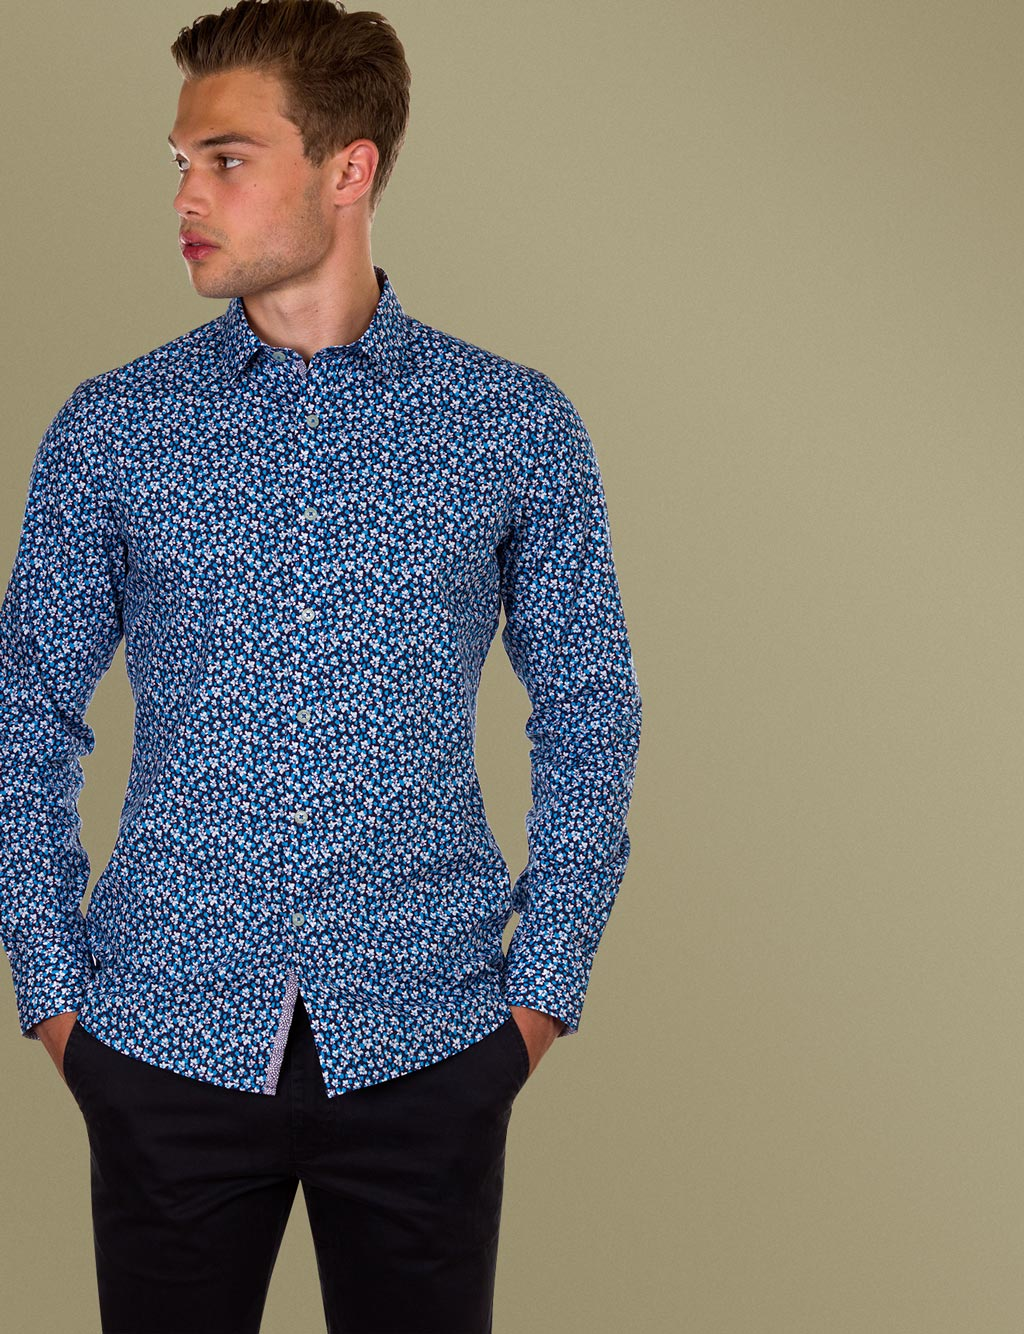 Findlay Floral Print Shirt (Slim Fit)